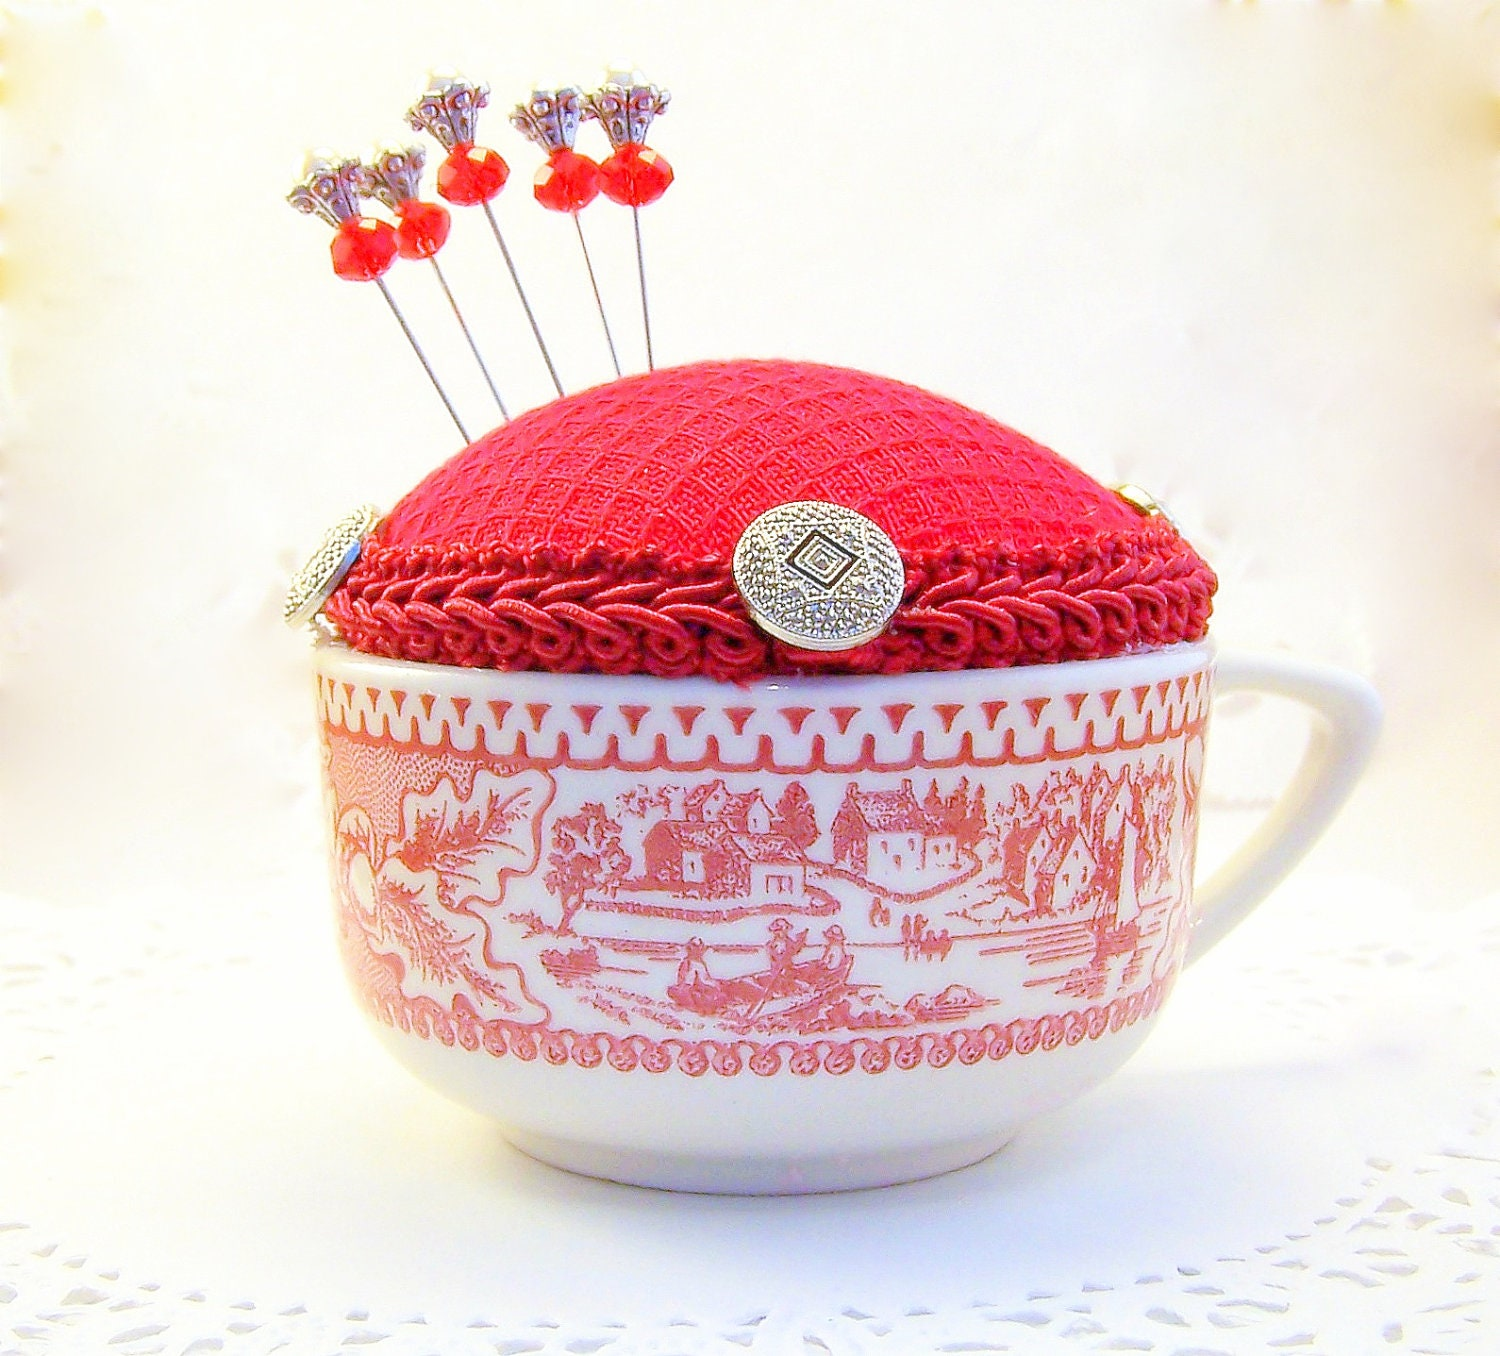 Needlecraft vintage teacup pincushion light red transferware dish holiday gift under 20 straight pins kitchen swing room quilter tagt tenx